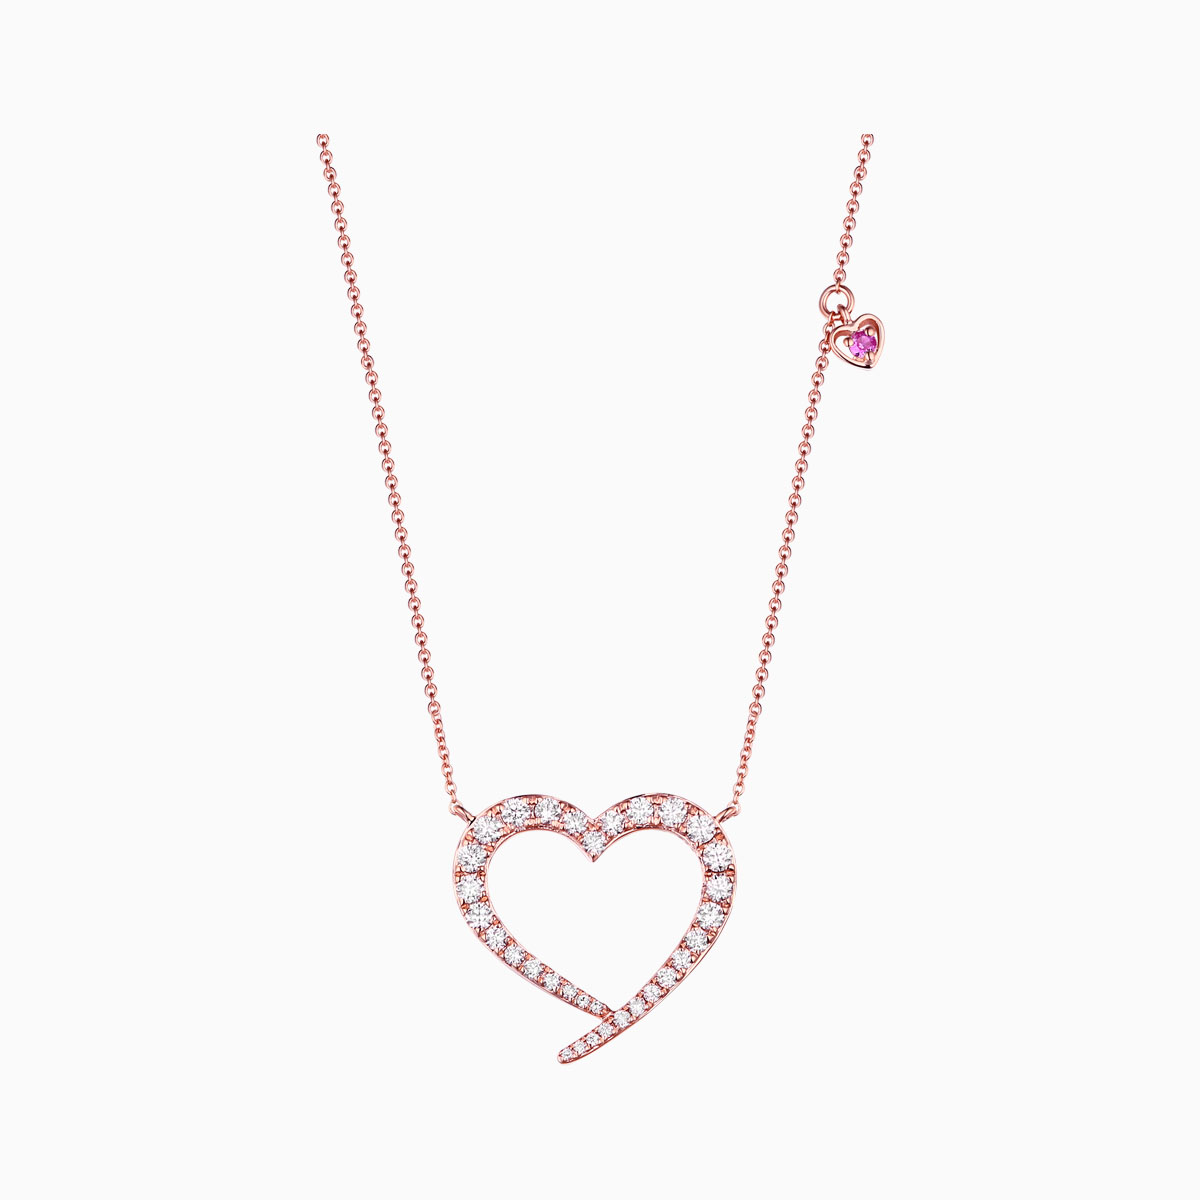 NL25725WPS- 14K Rose Gold Diamond Necklace, 0.56 TCW